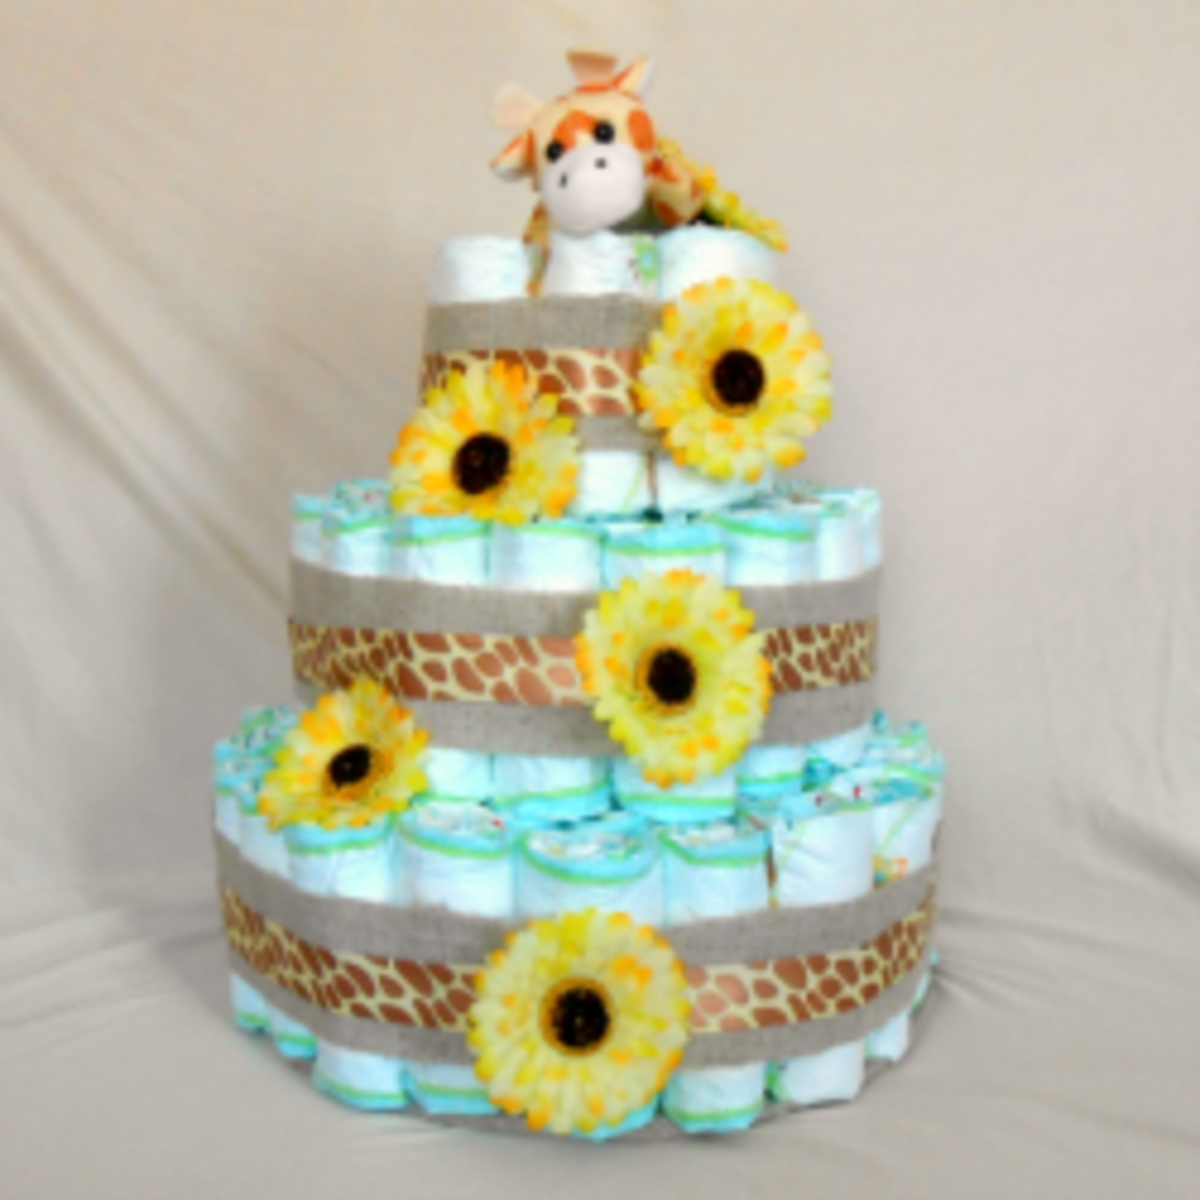 How to Make a Diaper Cake - Step by step tutorials